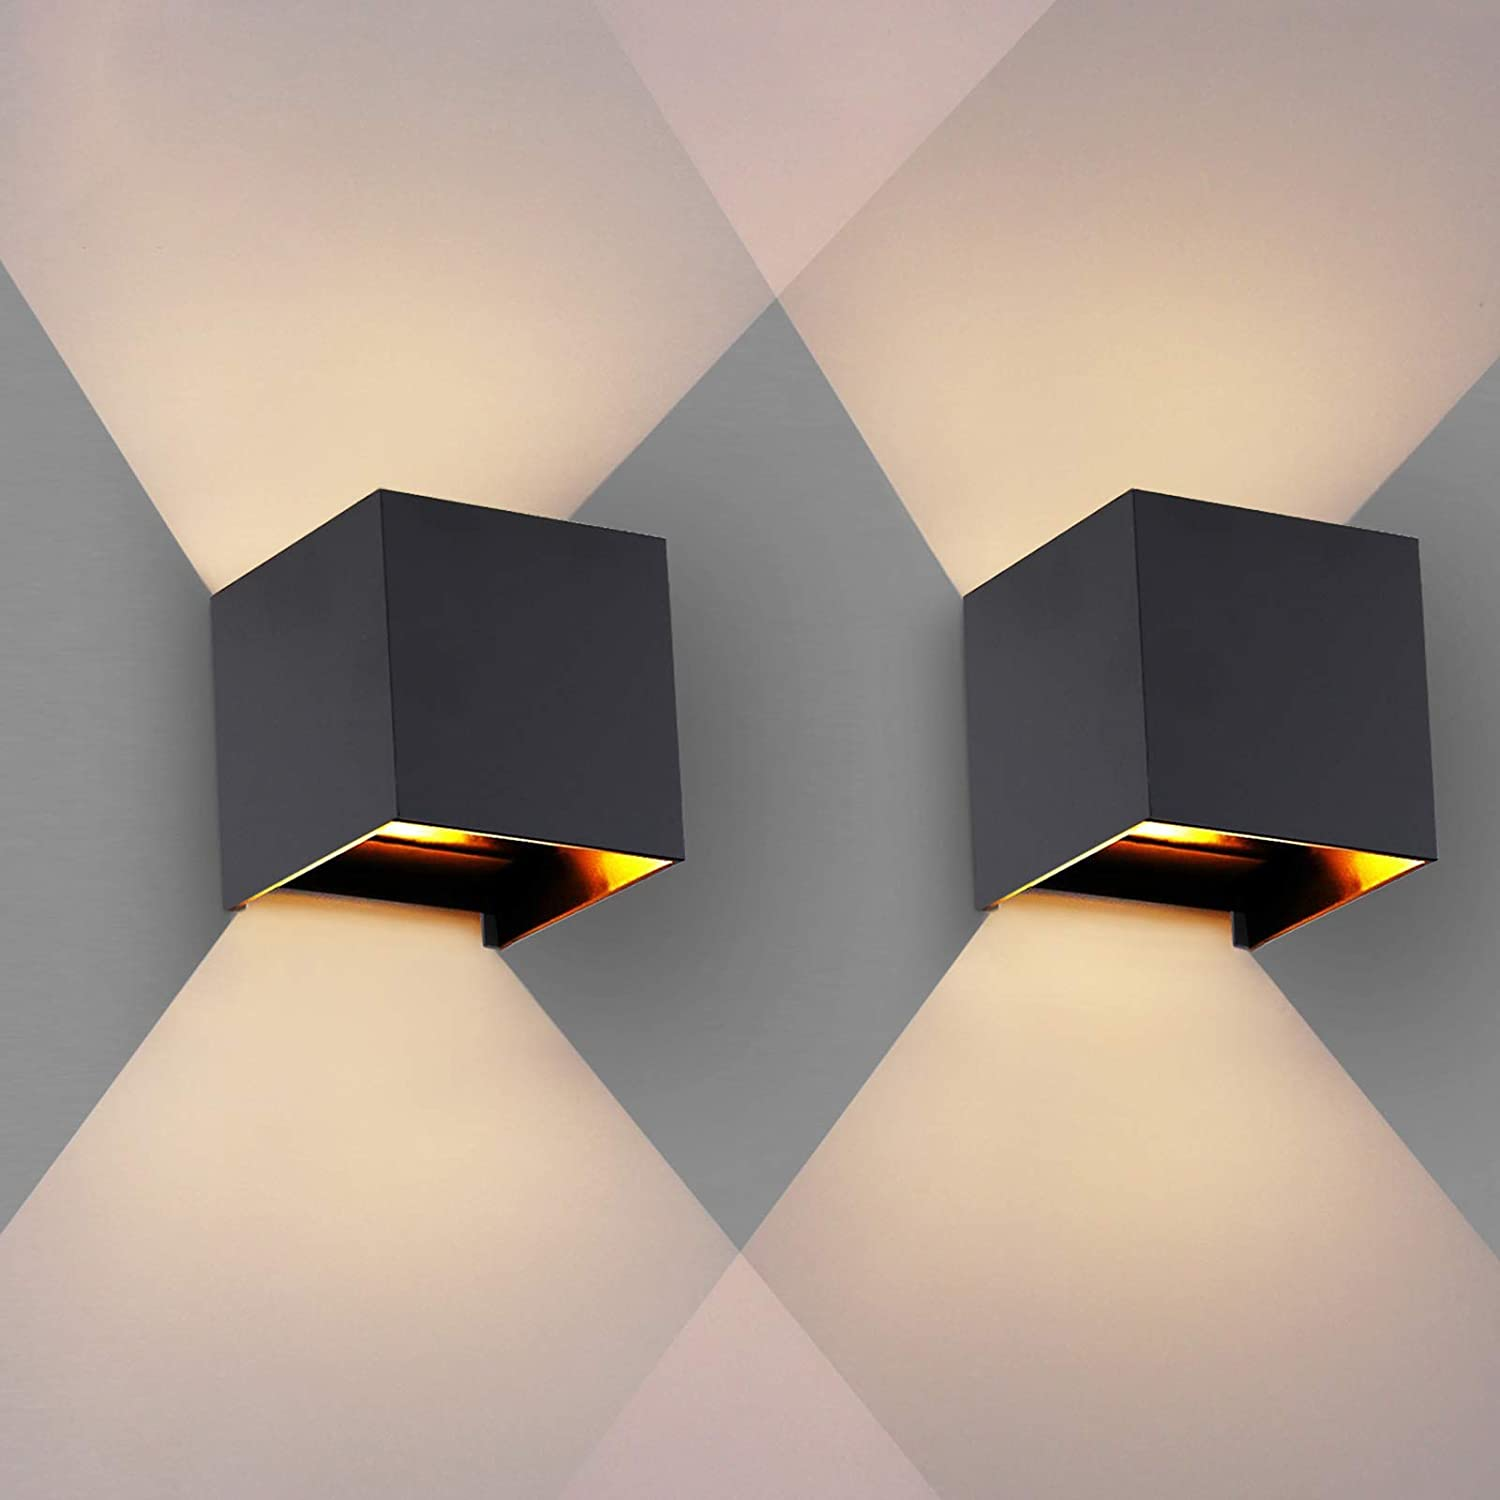 OOWOLF Modern Set of 2 LED Wall Sconces, Waterproof IP65 Outdoor, 3000K Cool White Aluminum Wall Sconce Lighting, G9 Replaceable Bulb Up and Down Indoor for Living Room Bedroom Hallway Black